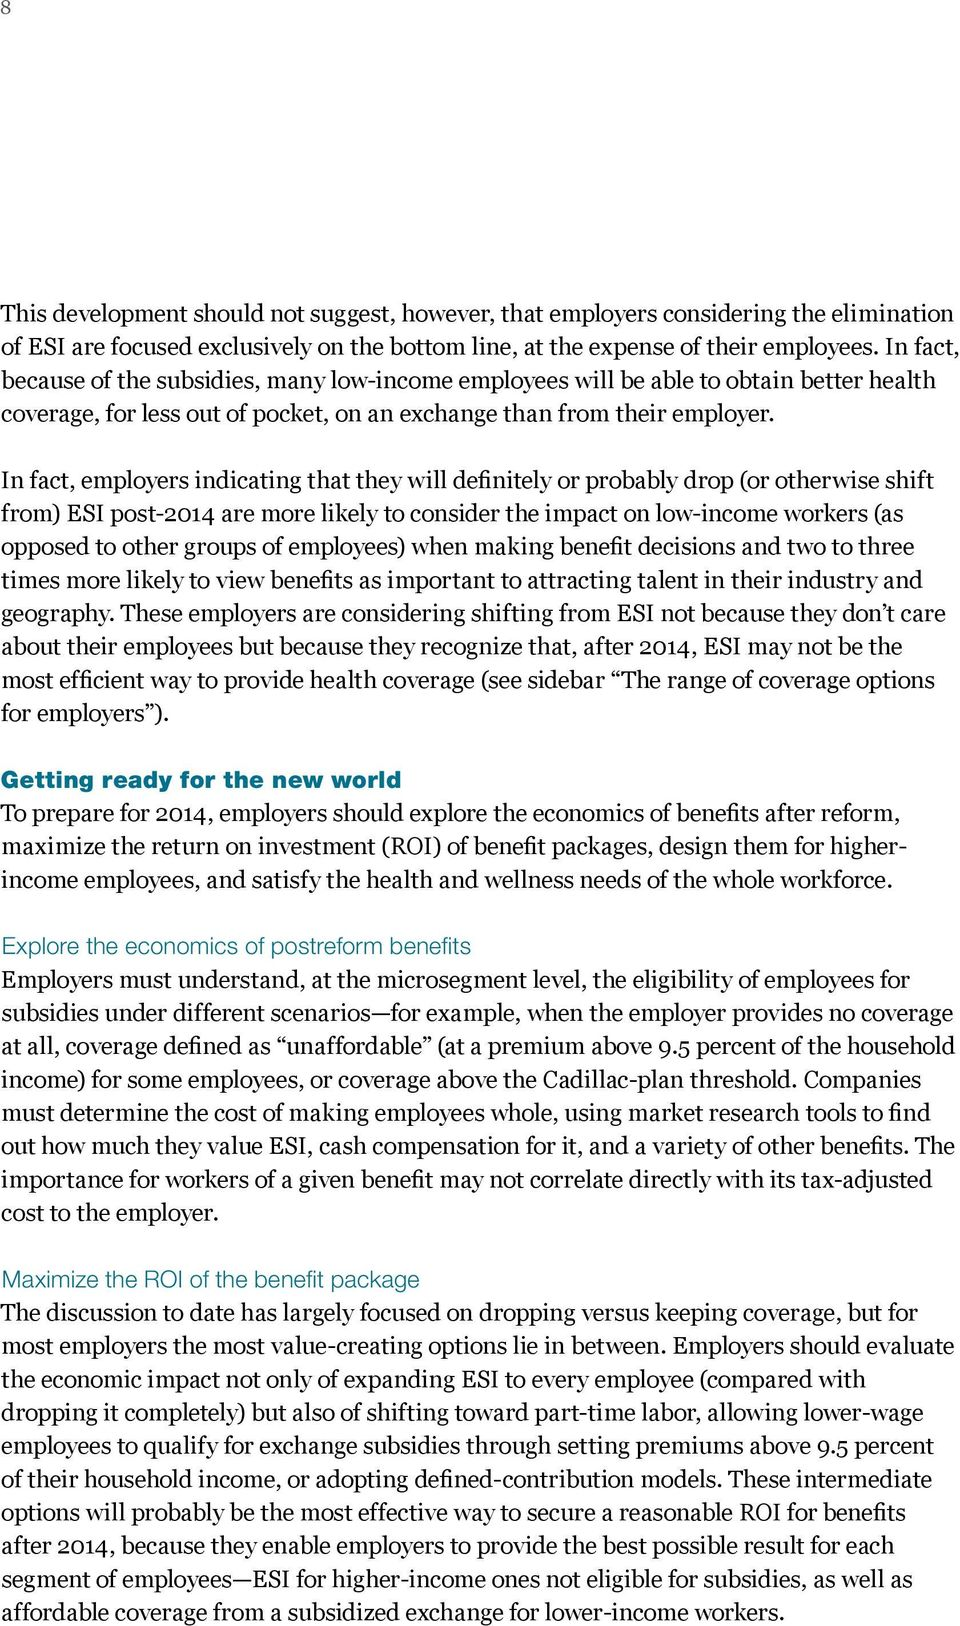 In fact, employers indicating that they will definitely or probably drop (or otherwise shift from) ESI post-2014 are more likely to consider the impact on low-income workers (as opposed to other